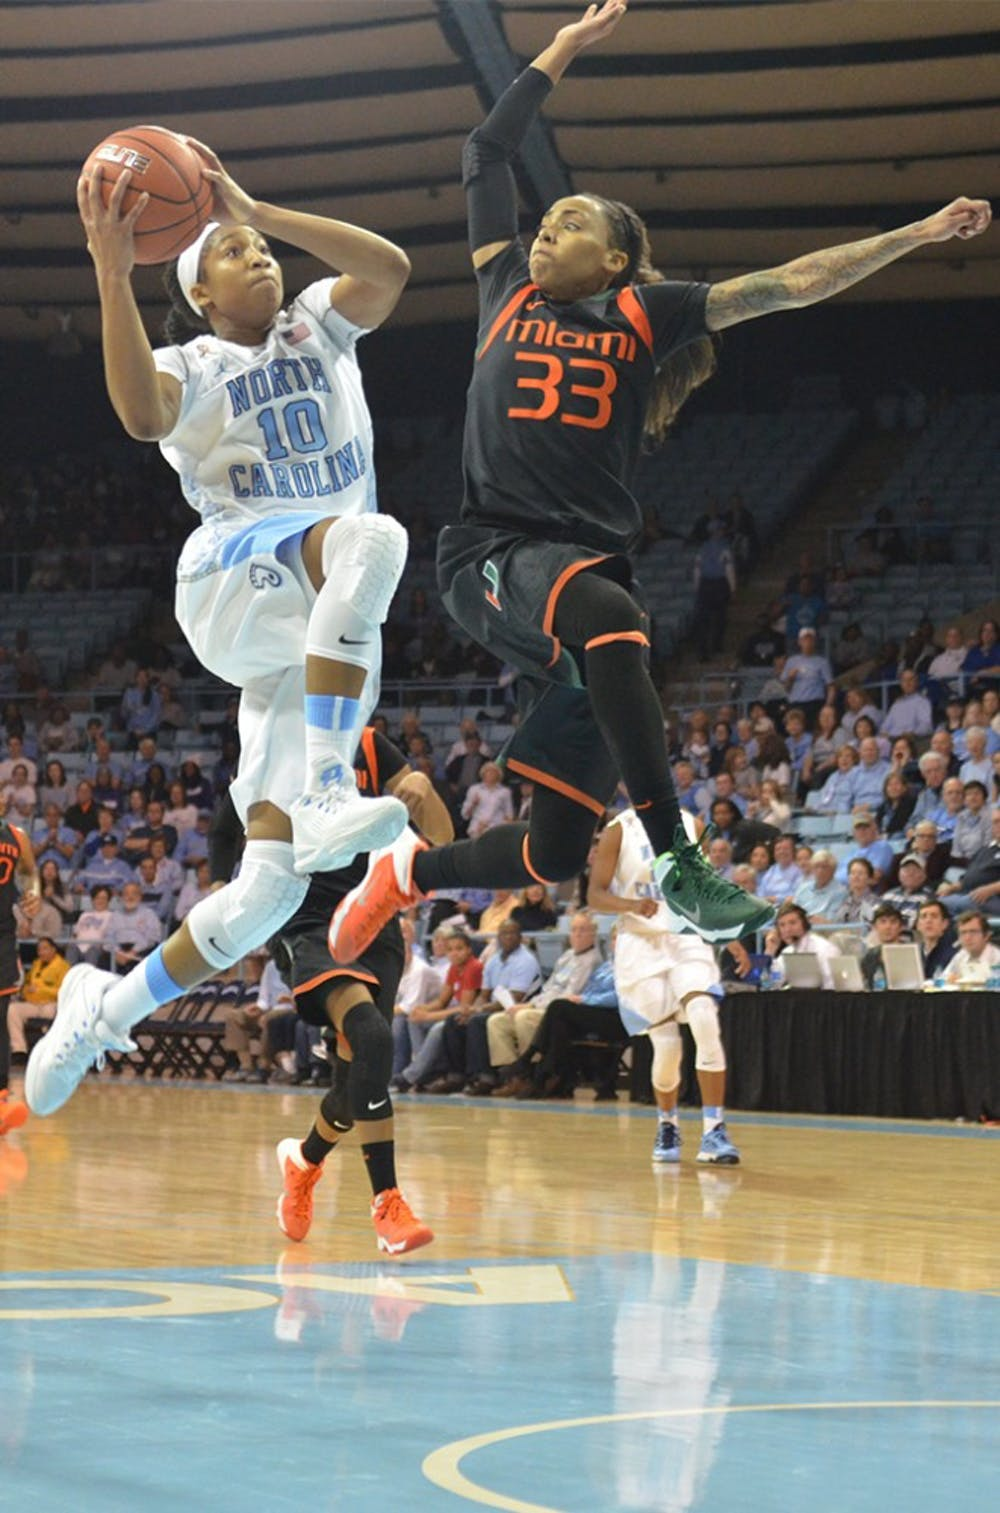 UNC guard Danielle Butts (10) makes a shot and draws a foul from Miami guard Suriya McGuire (33).